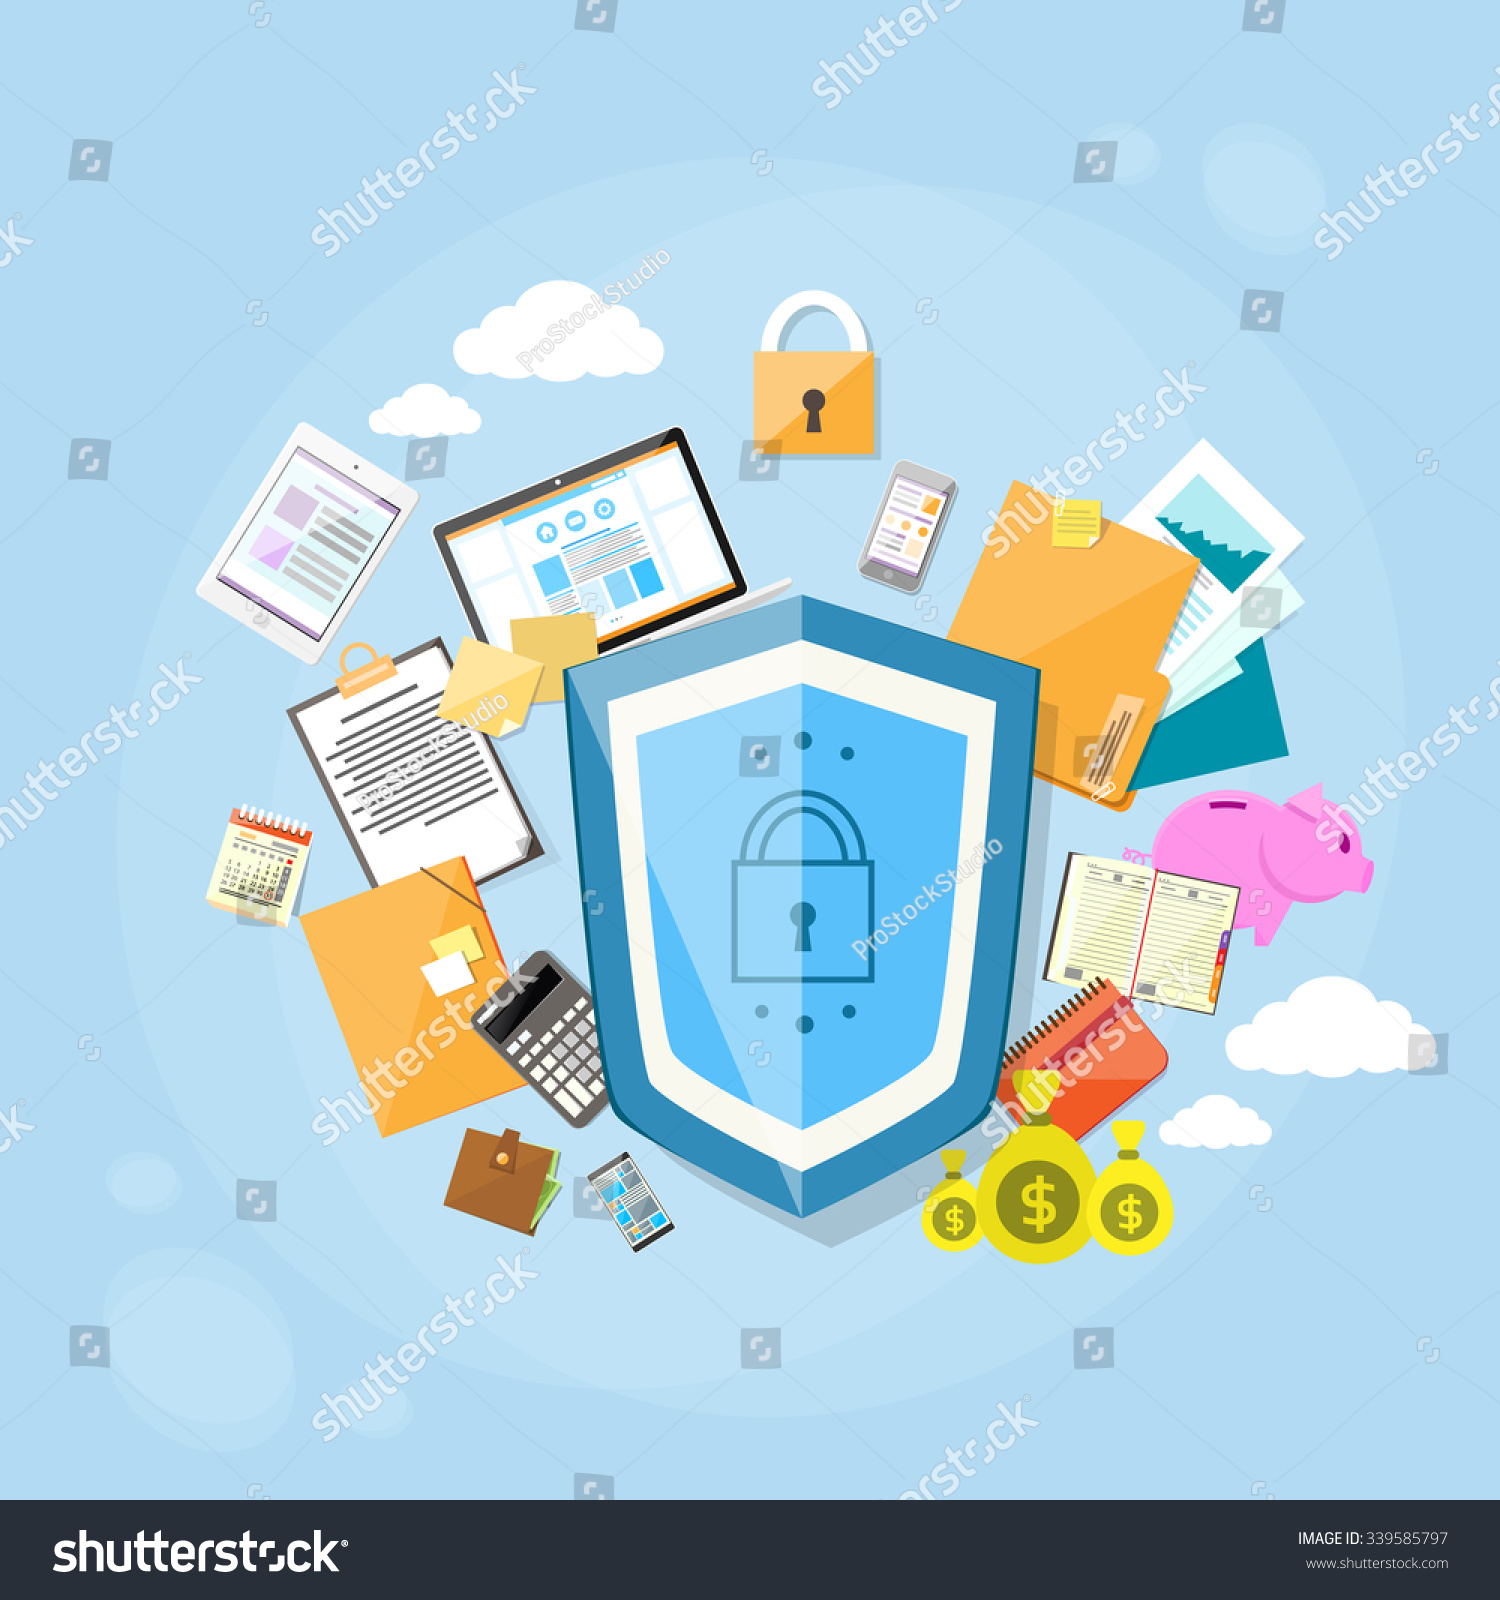 information privacy The office of the information commissioner (oic) is an independent body that promotes privacy rights and obligations under the act find out more about privacy principles and how they apply to certain situations, such as using drones or camera surveillance.